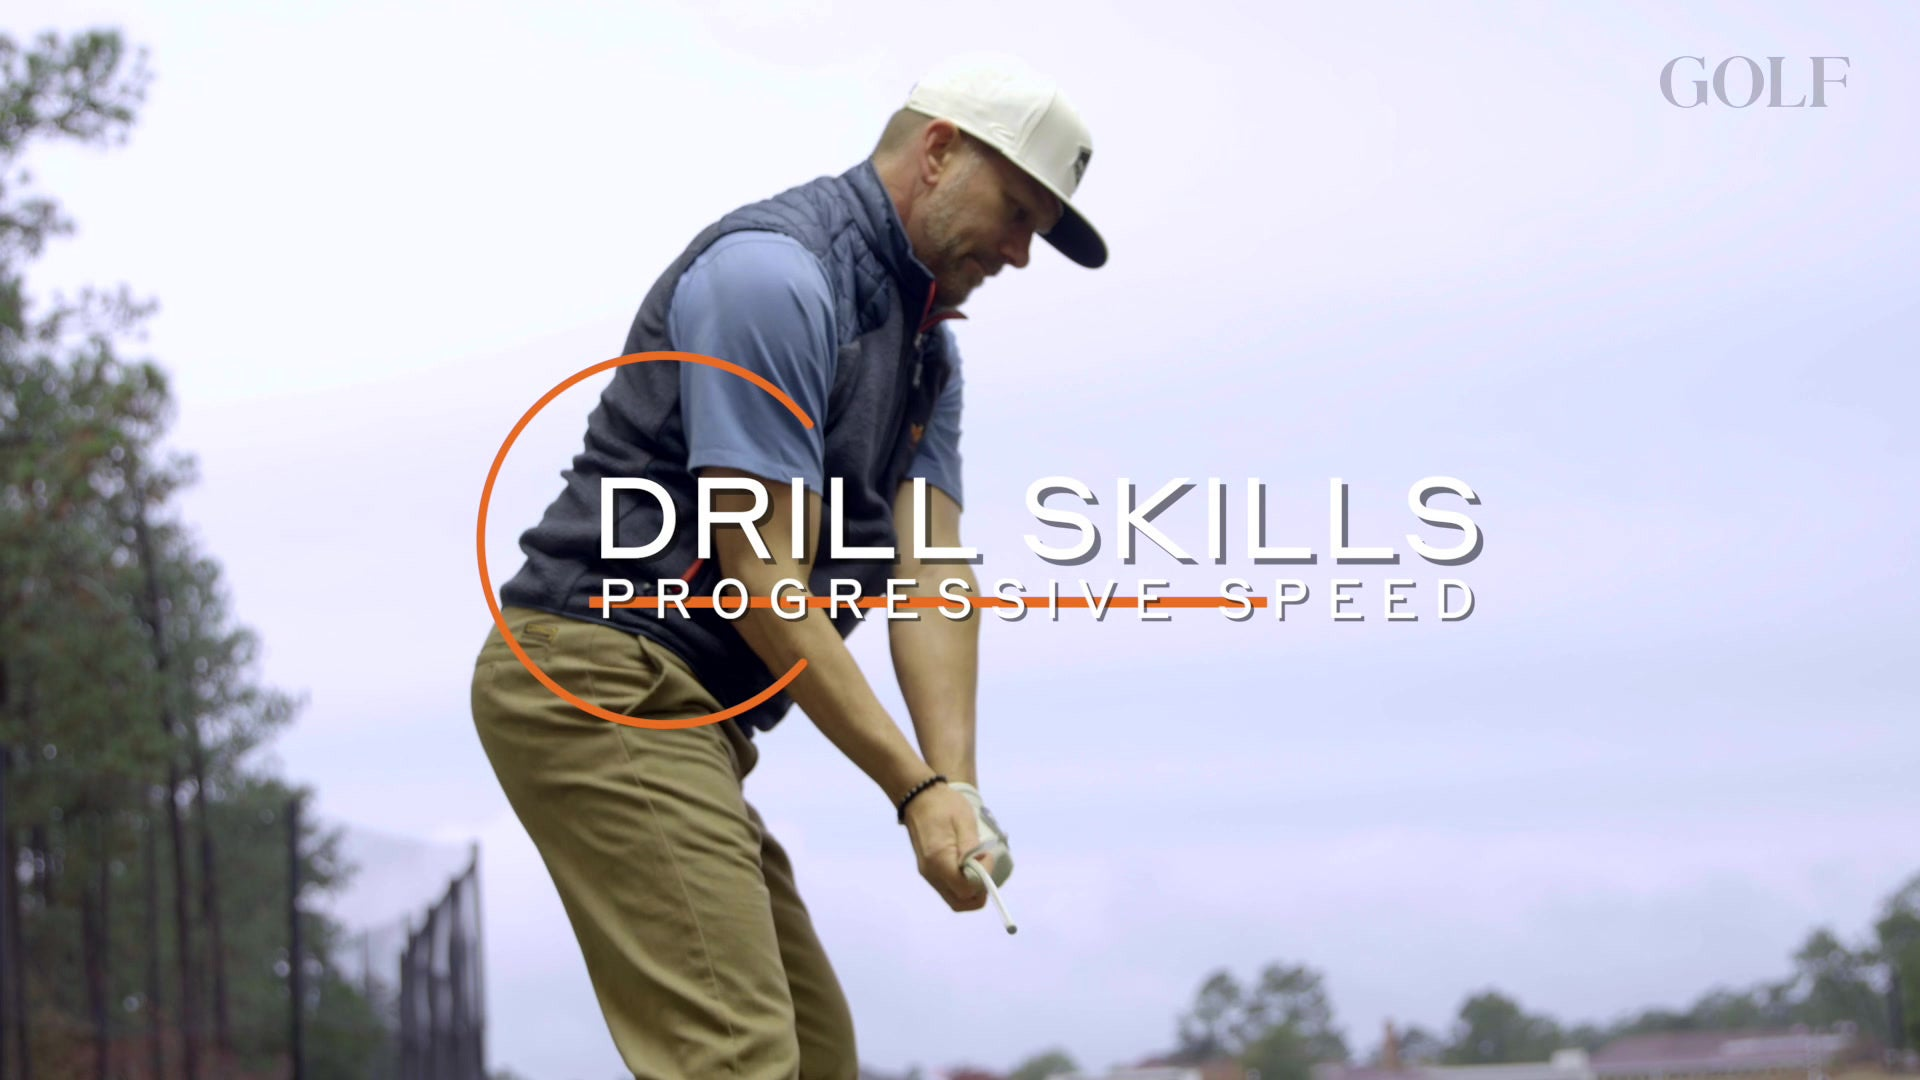 This easy swing speed-boosting drill is perfect for the offseason: Drill Skills